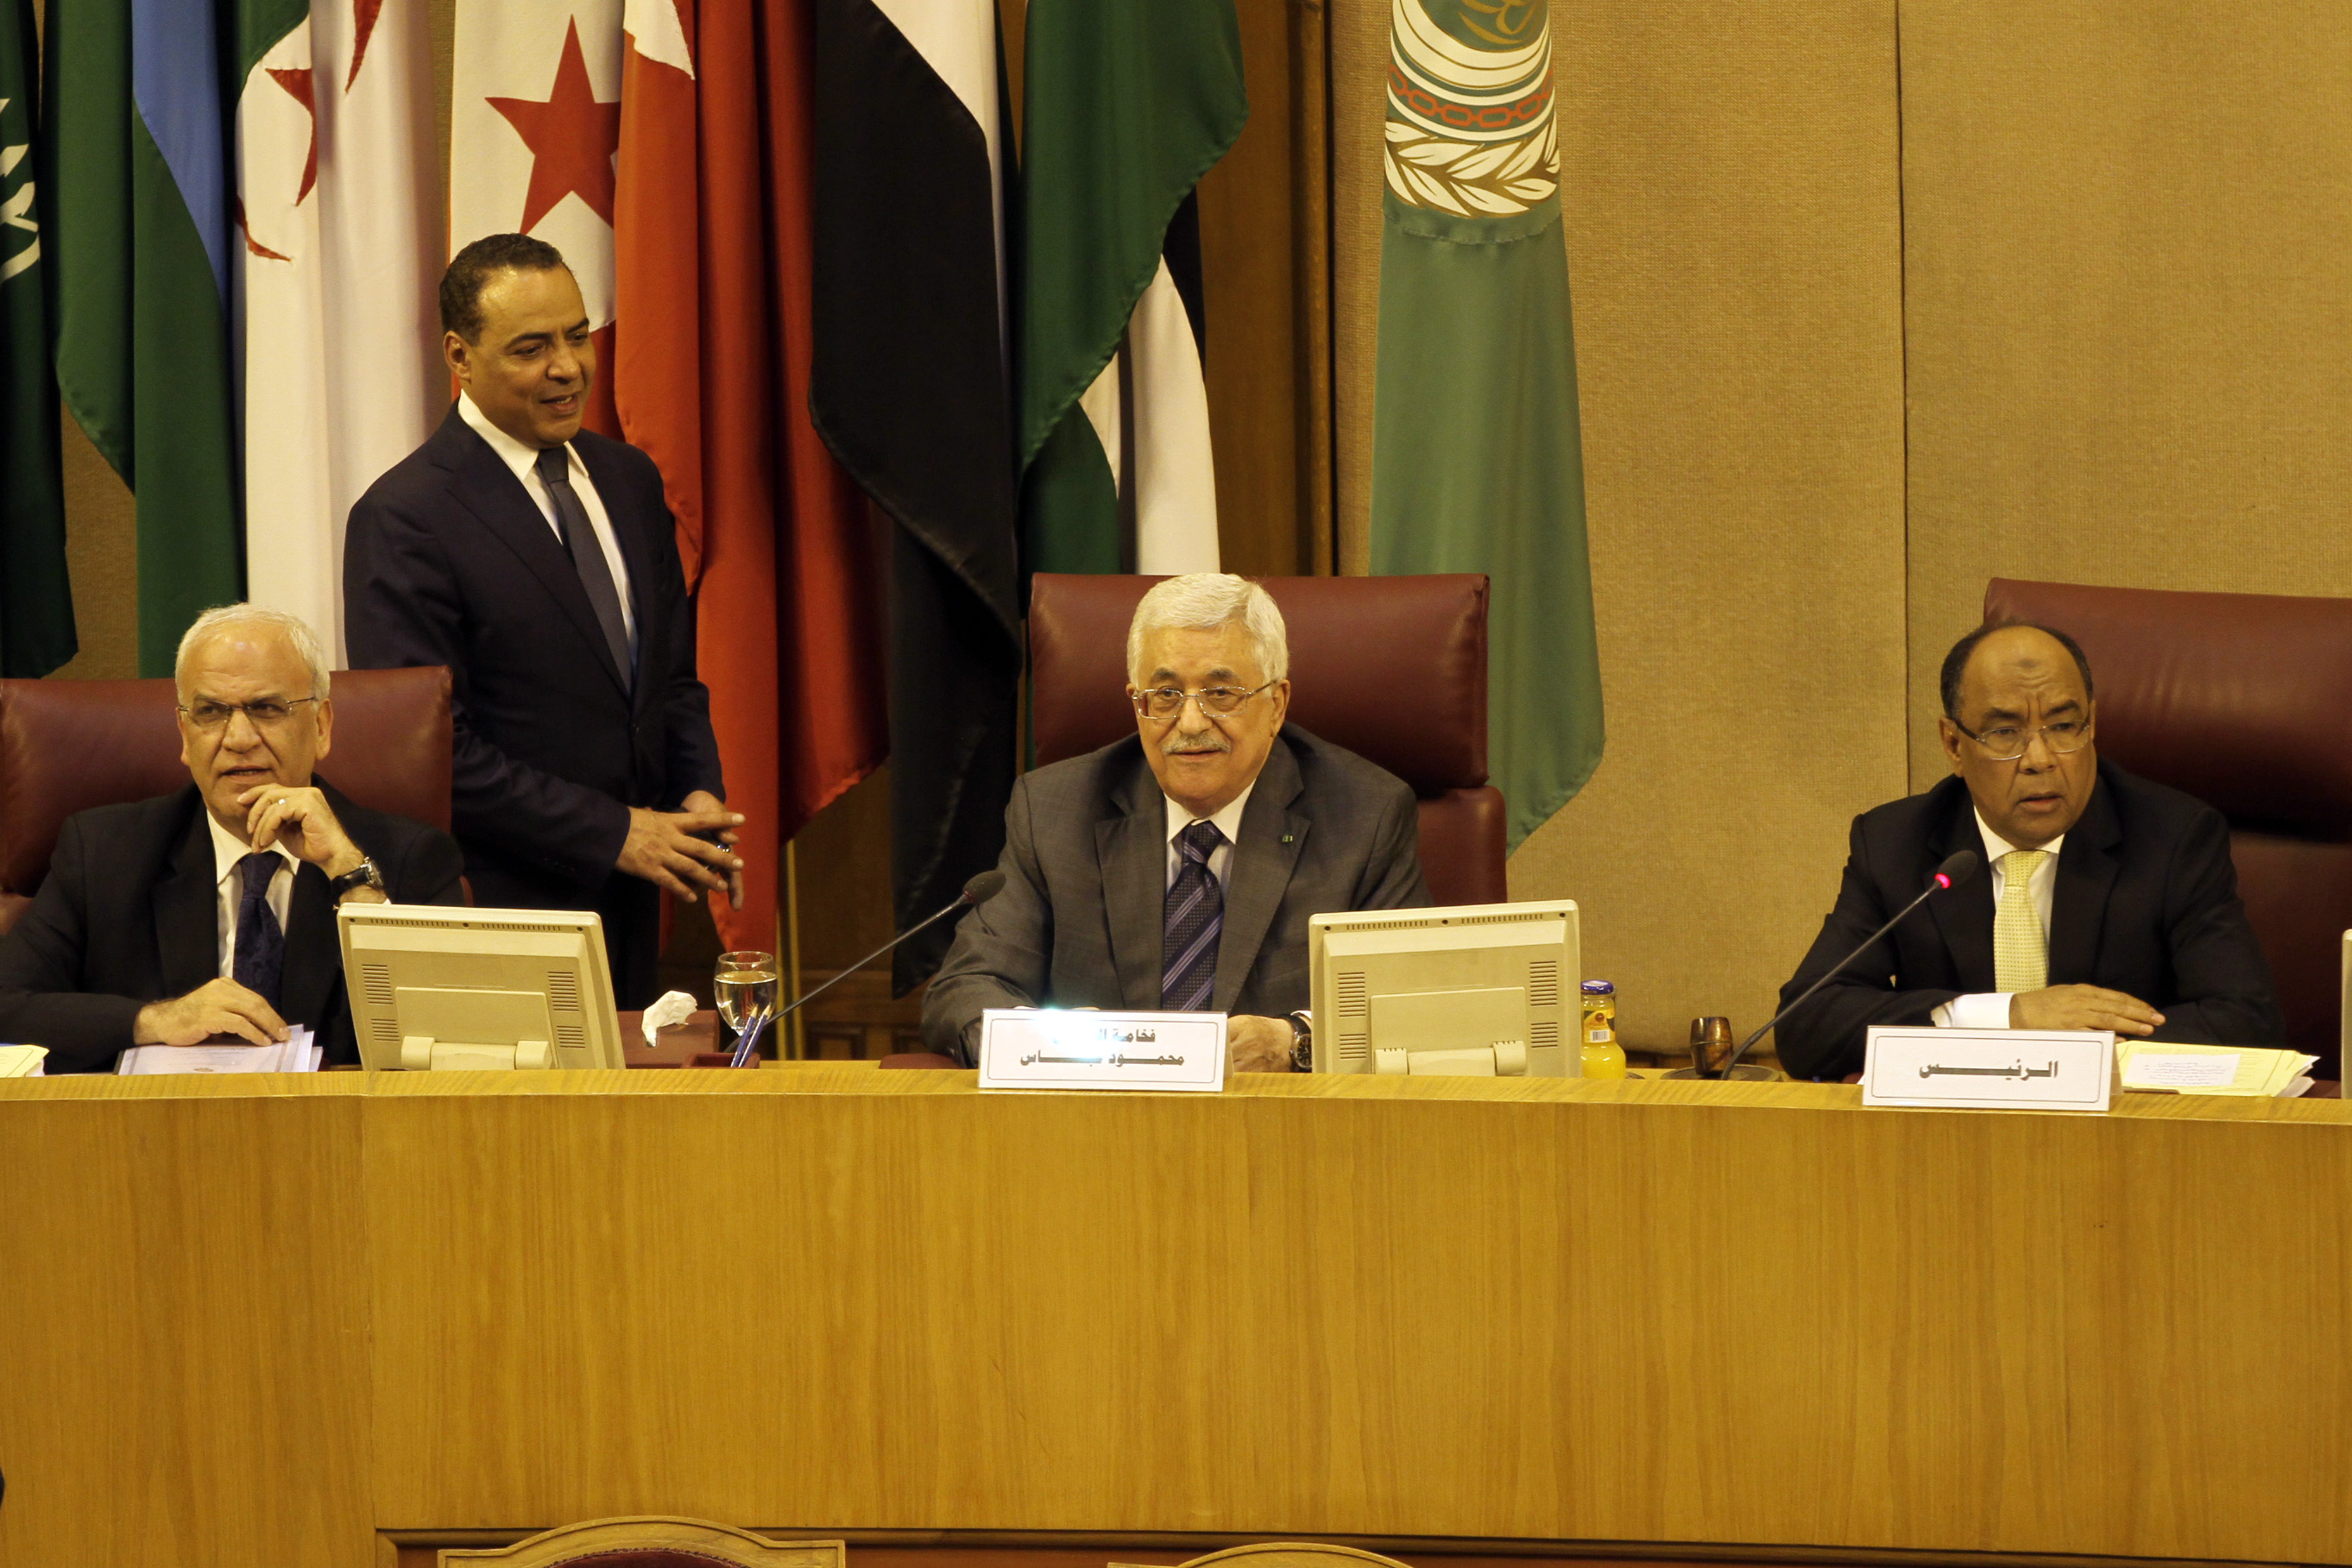 Palestinian Authority President Mahmoud Abbas attended the meeting. (Photo by Ahmed Al-Malky/DNE)